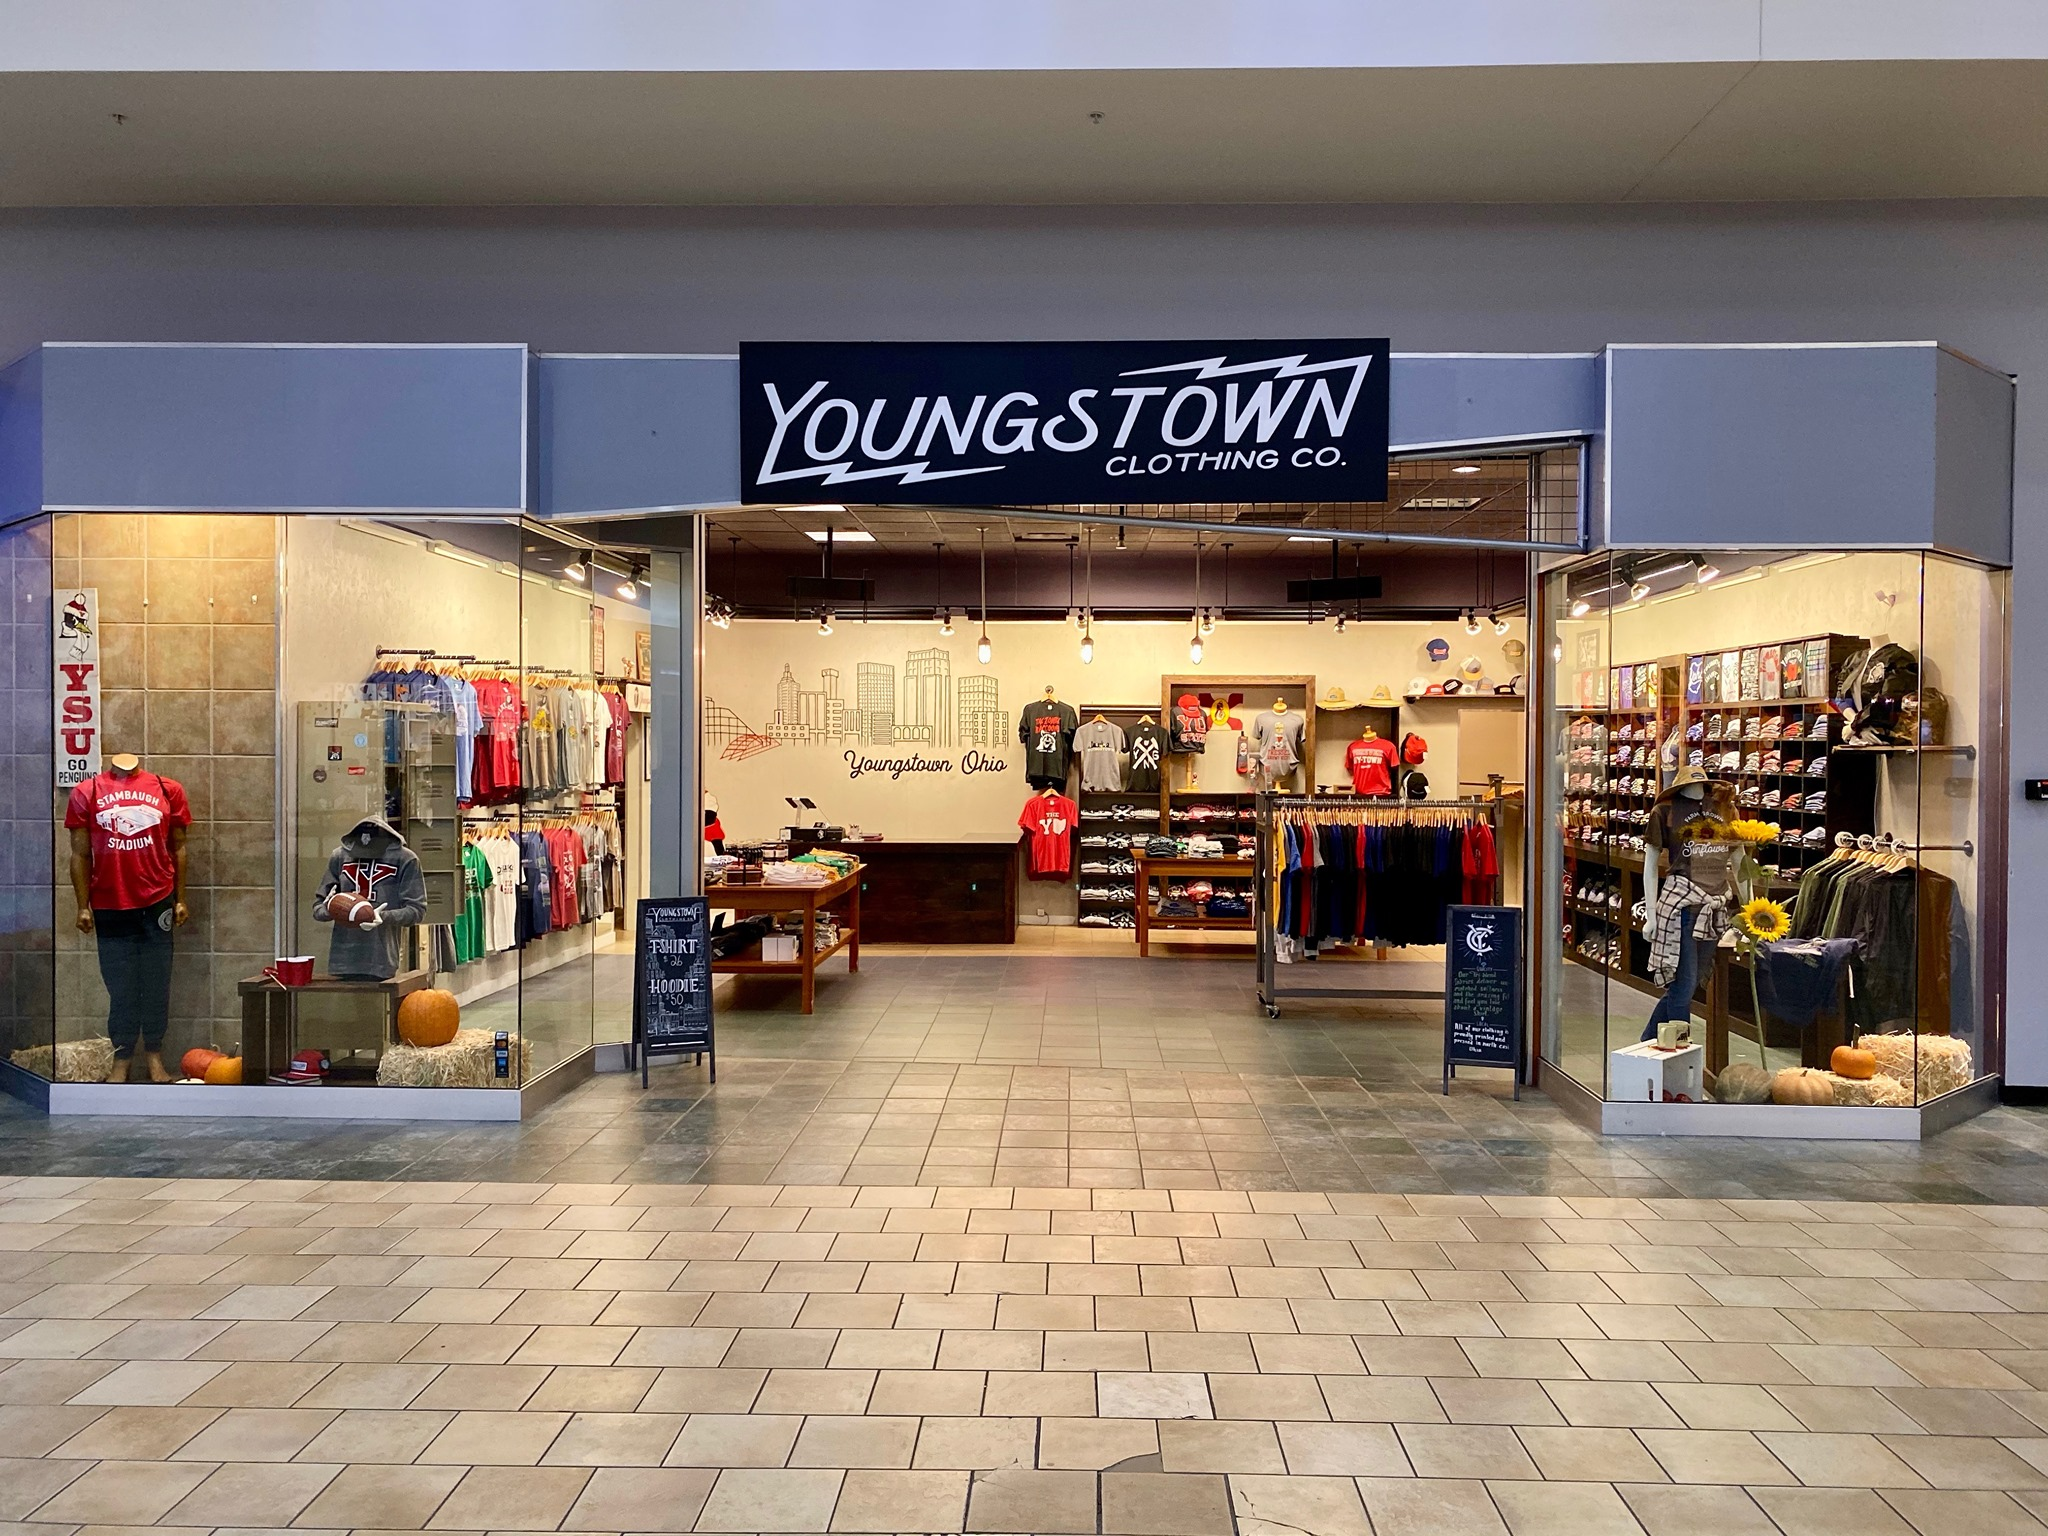 Youngstown Clothing Co.